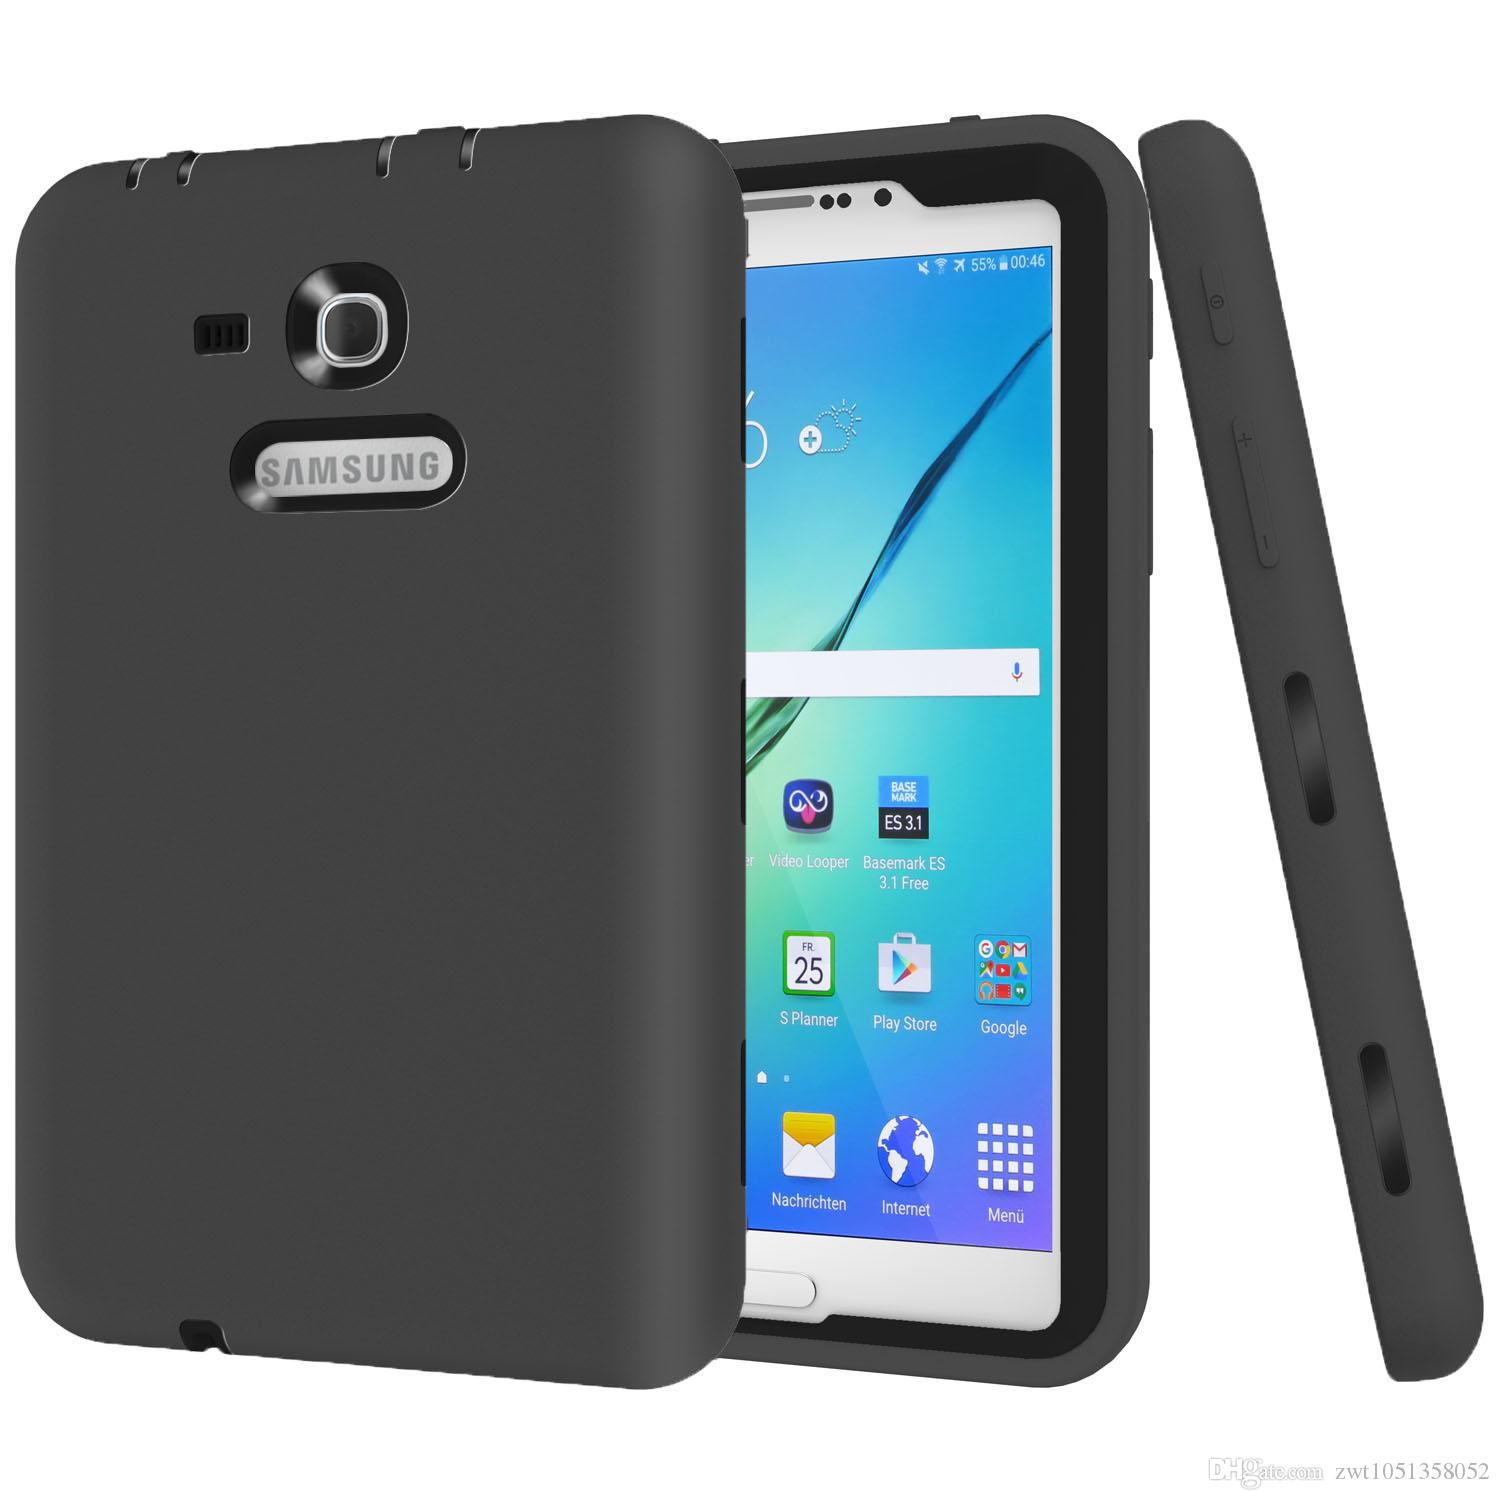 hardware r feature guide big rug galaxy asp group the phone gamer samsung test edge pocket rugged vena android accessory cases